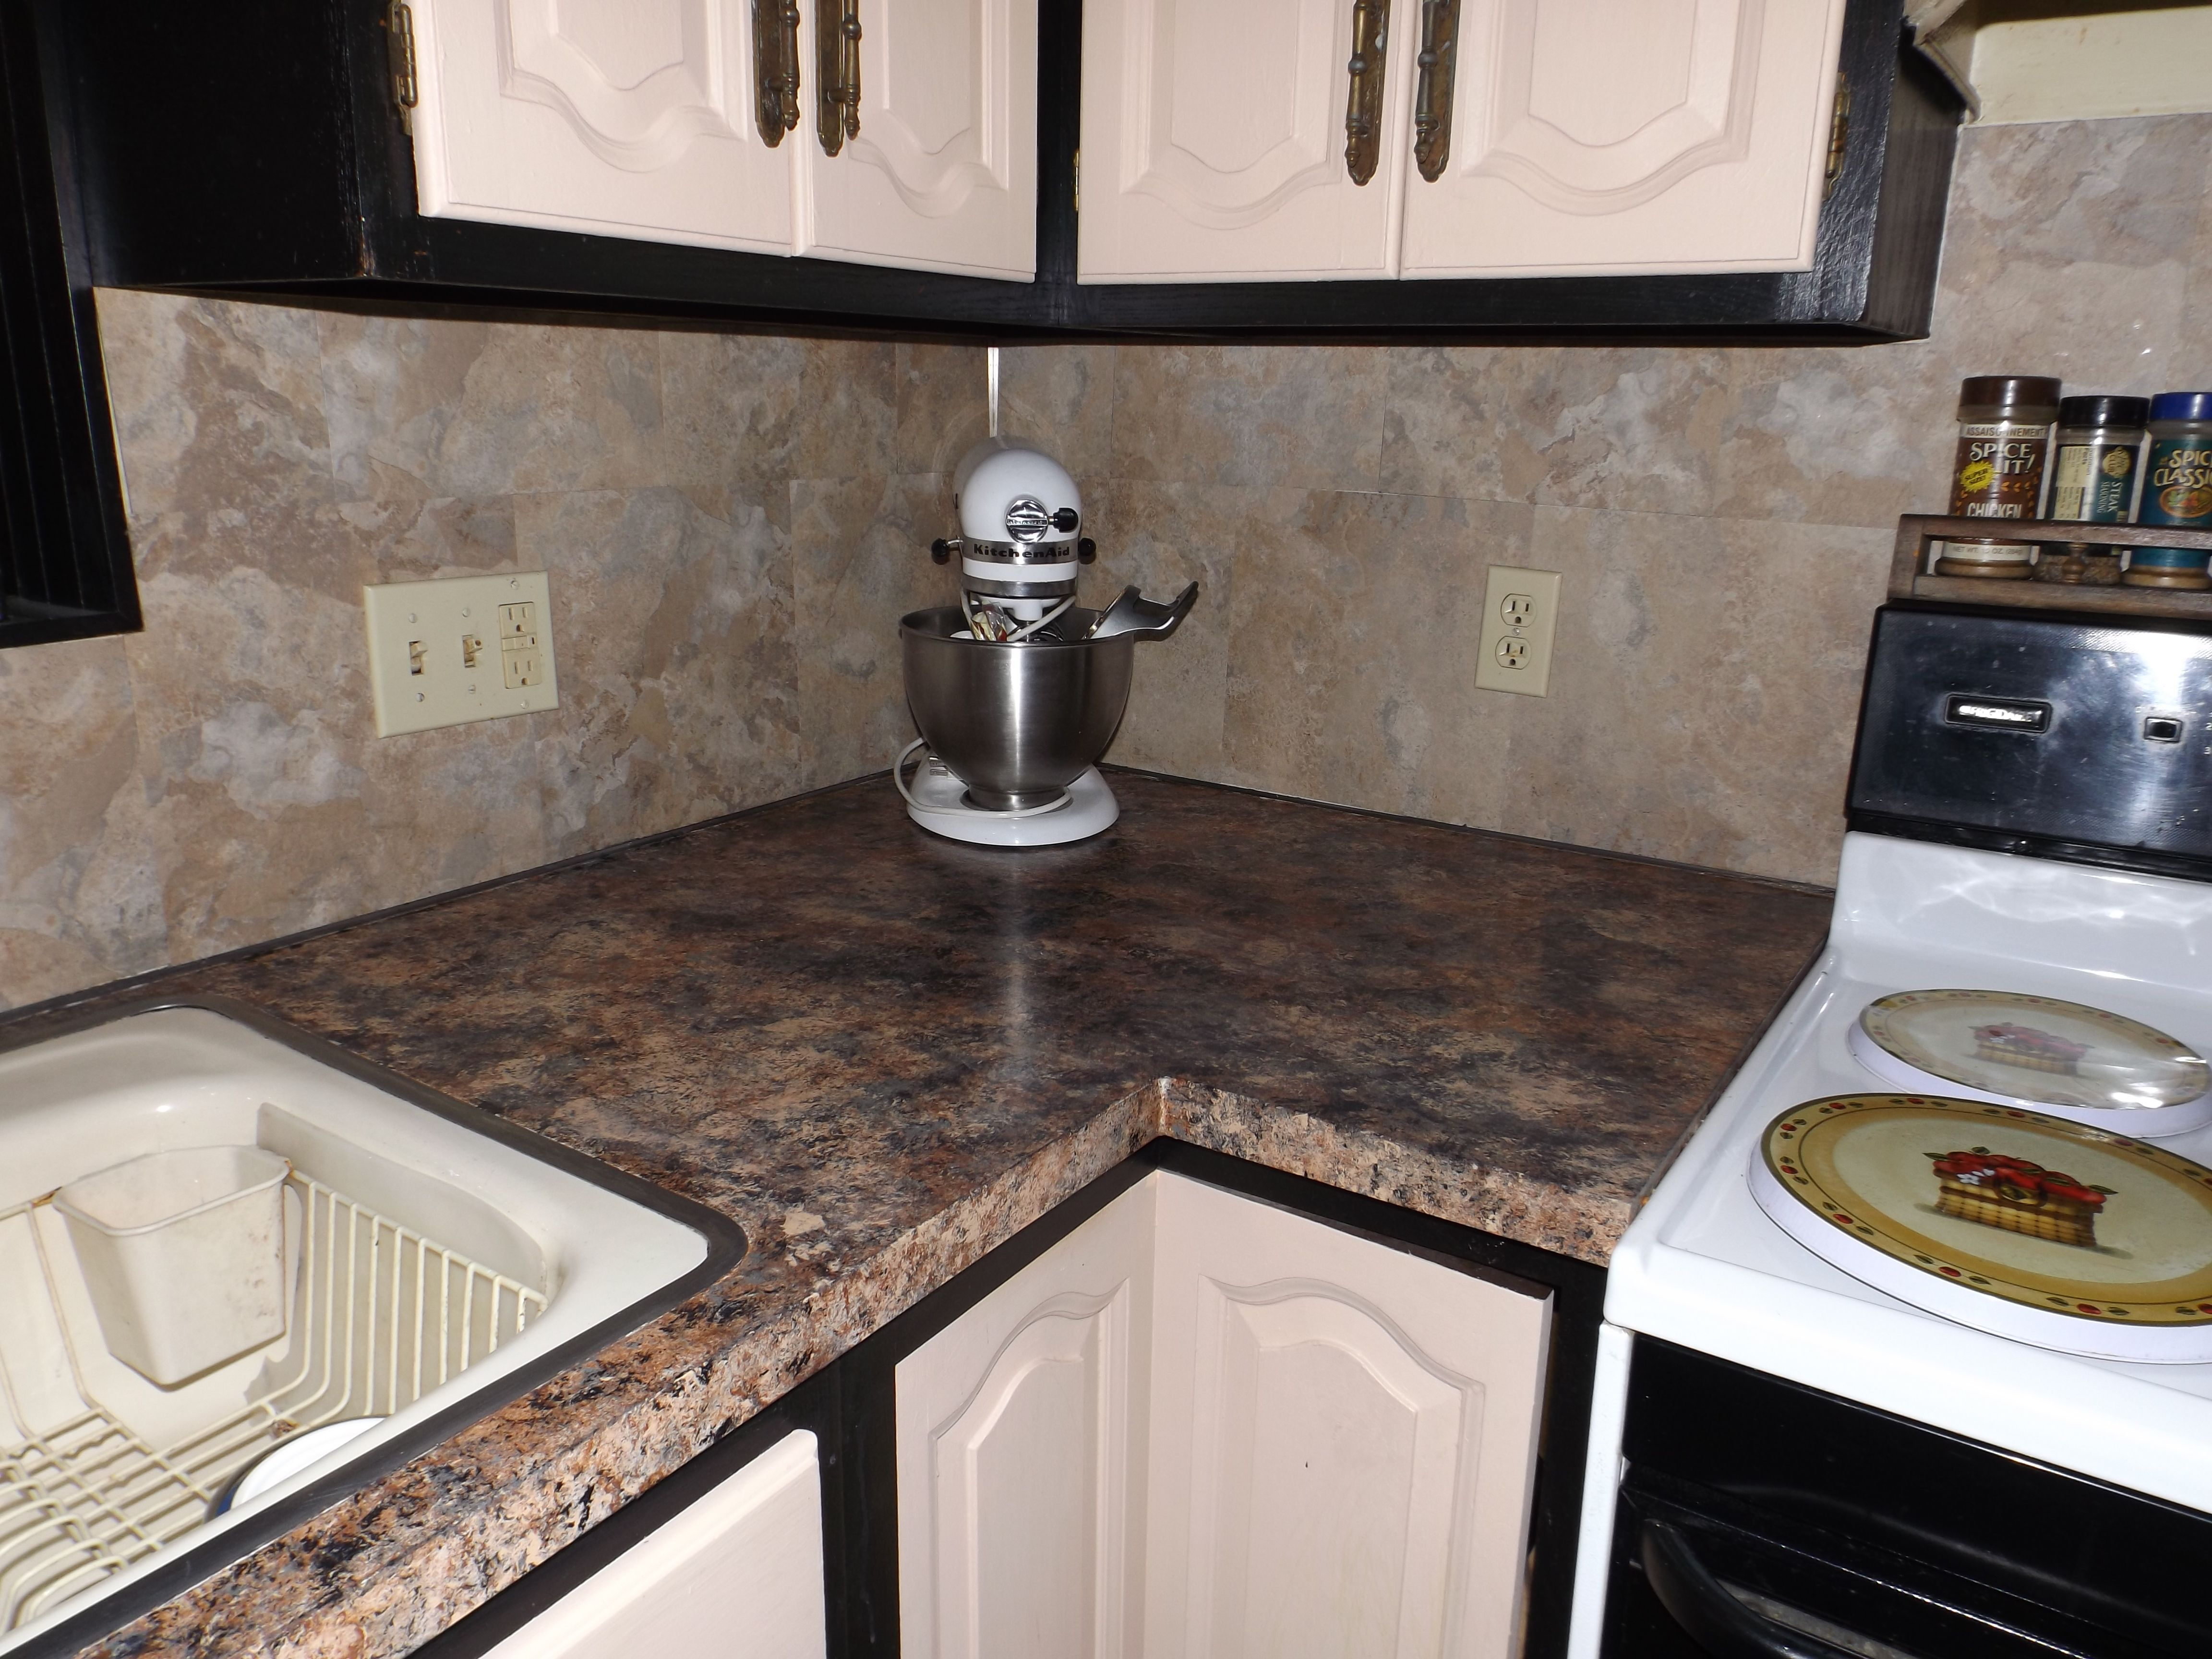 painted laminate countertops - photo #31